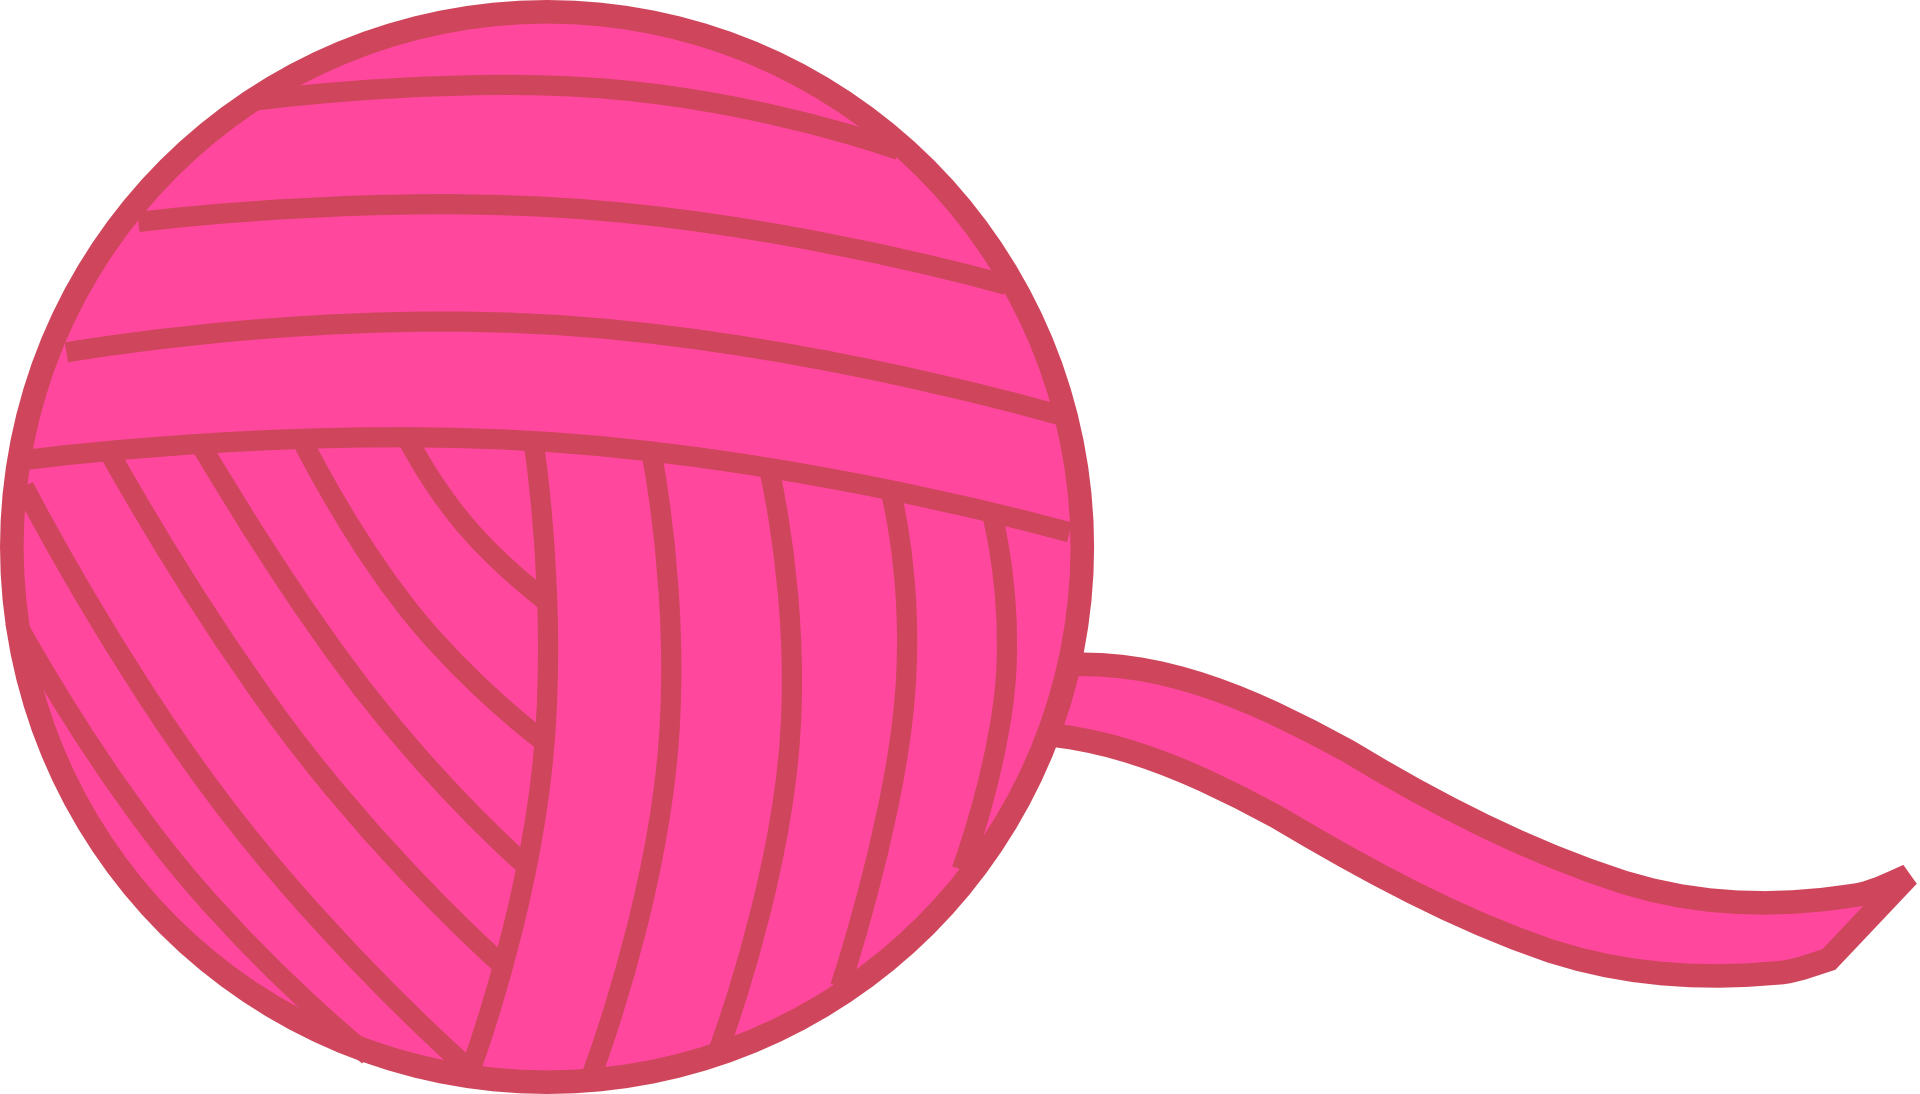 yarn clipart transparent background